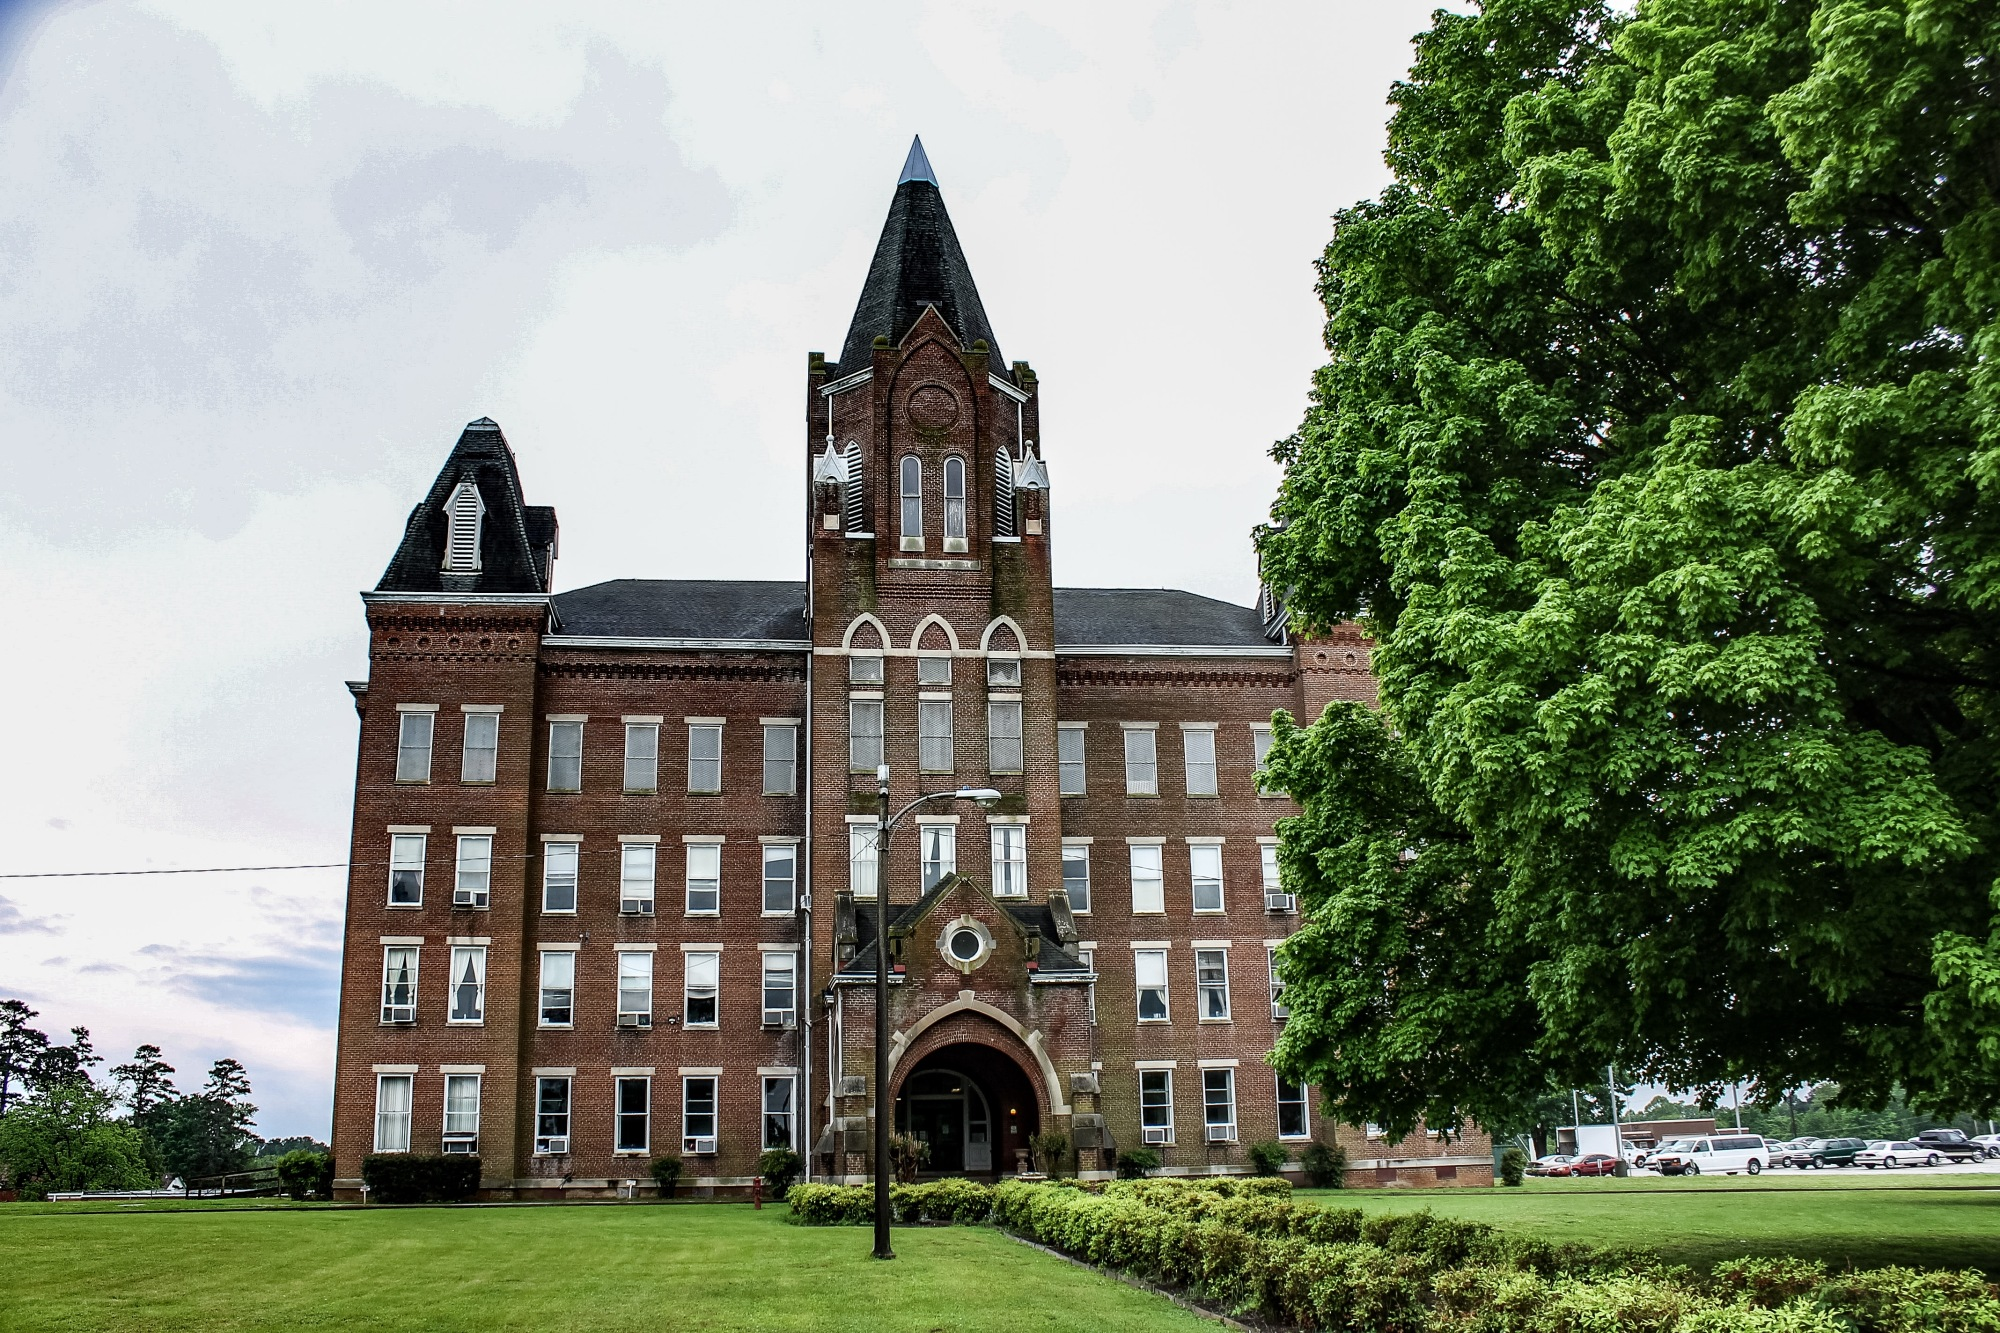 Today, the original Kirkbride building is used for administration. The patient wings were demolished in the 1980s.